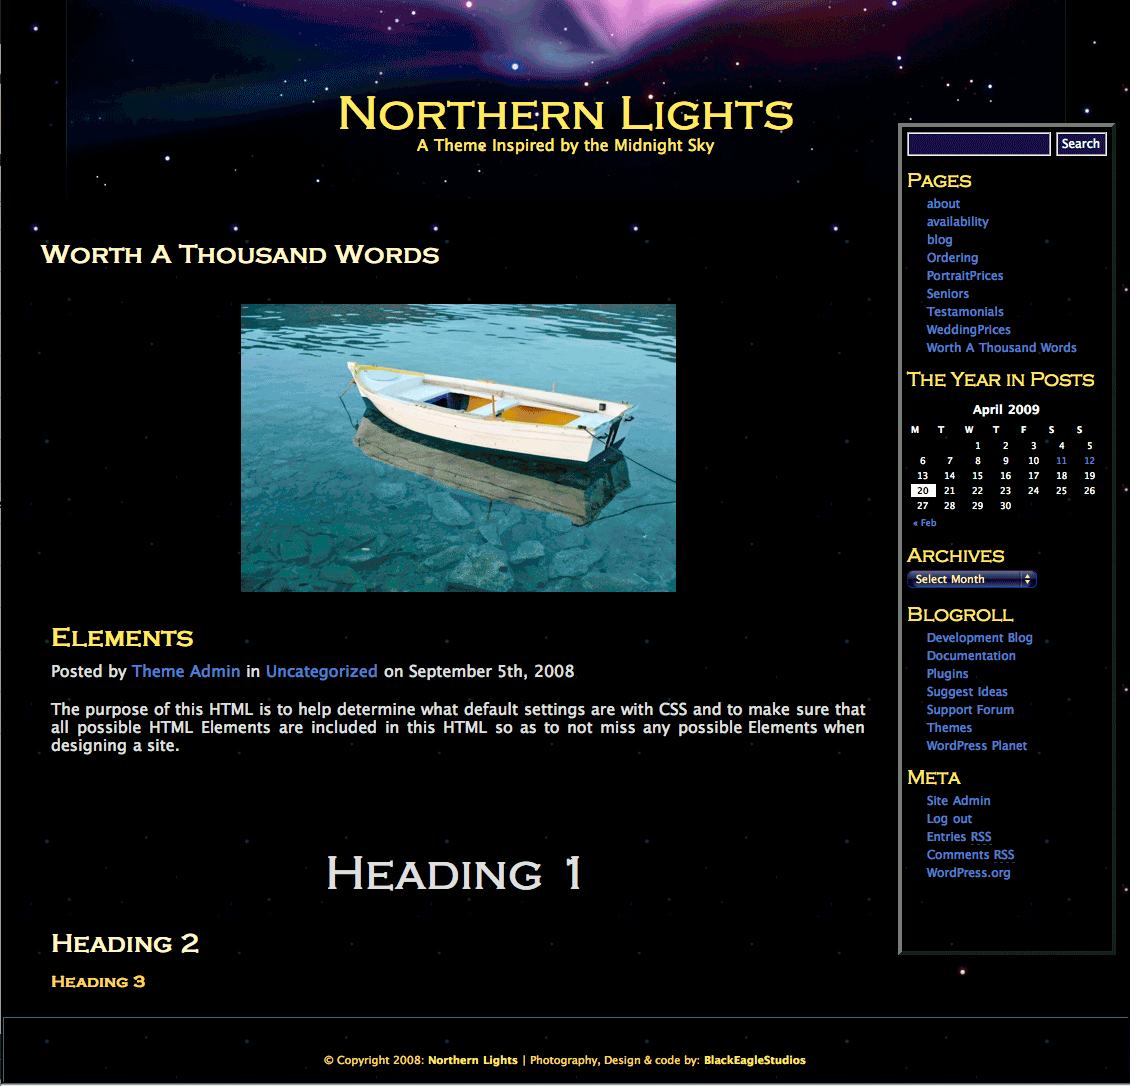 Northern Lights screenshot